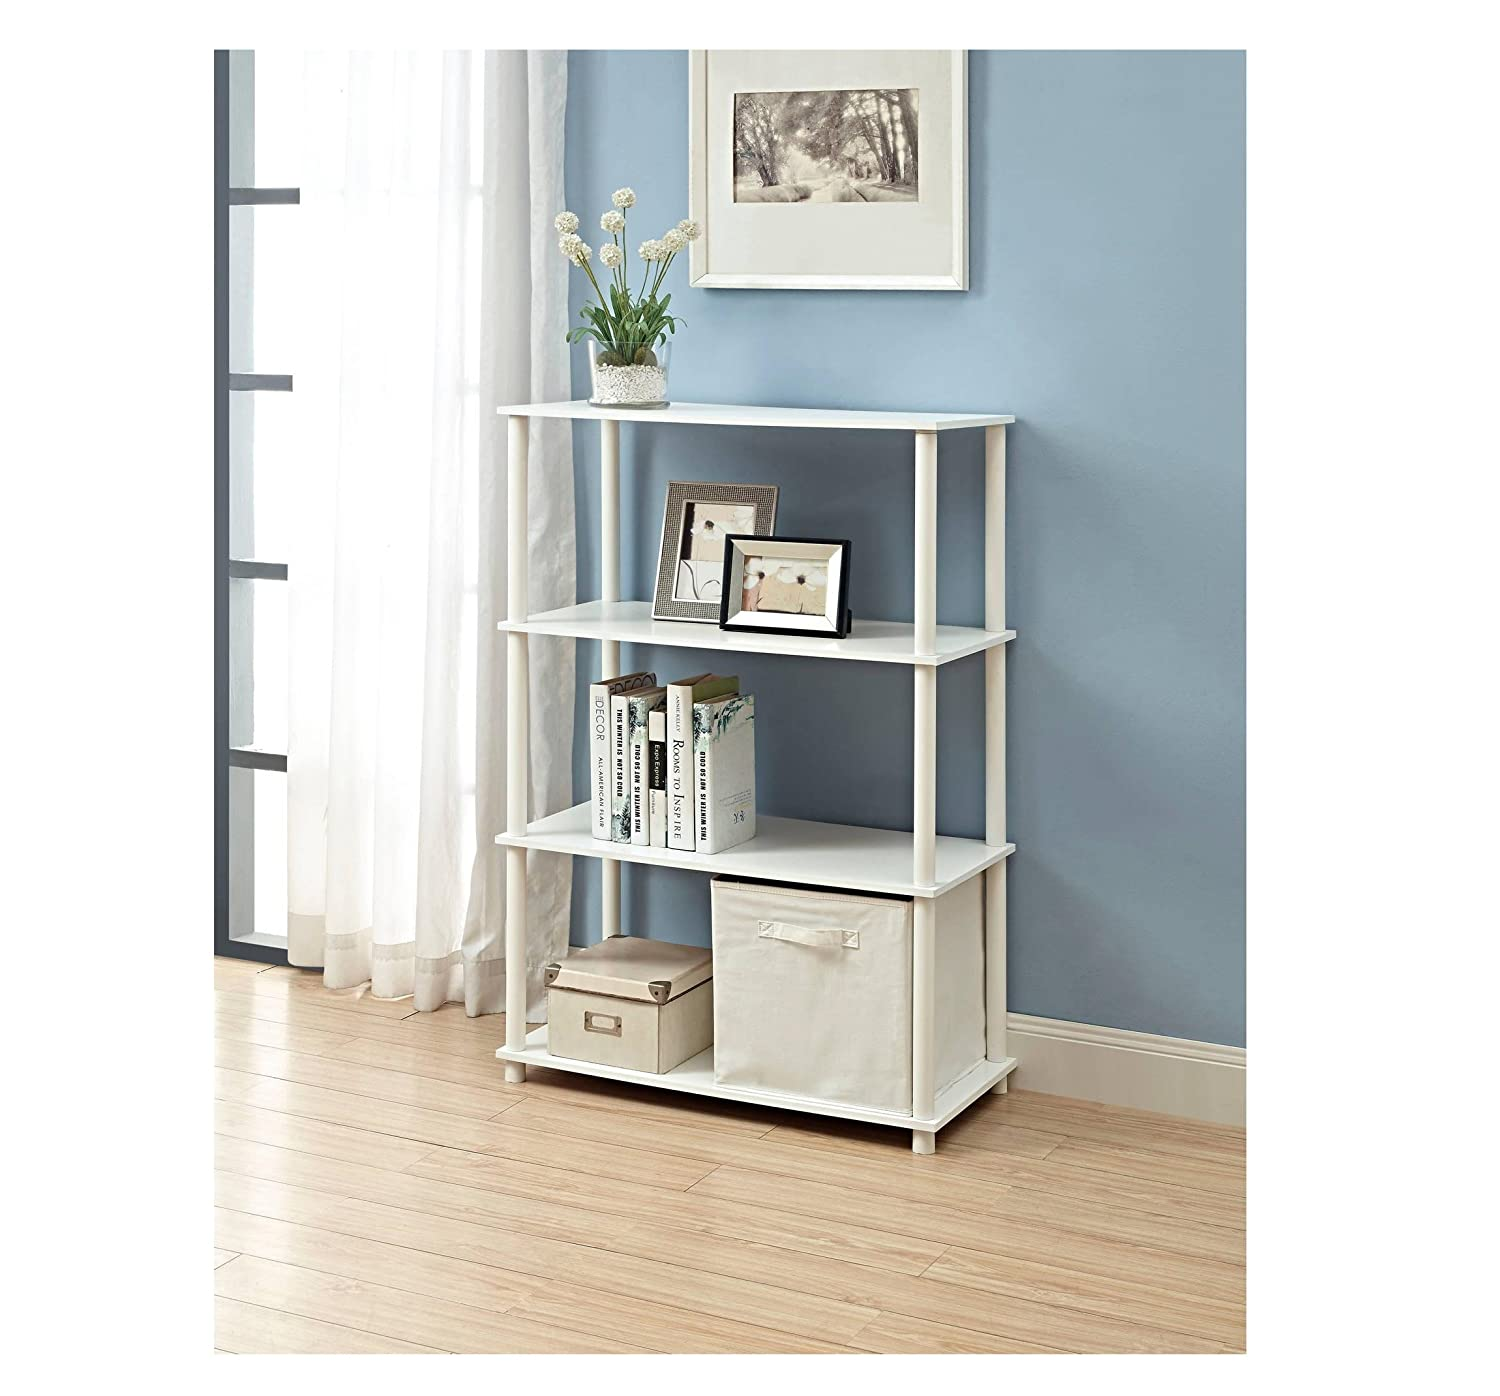 cubes easy ikea look from and wall for storage cube box a stylish update solution cabinets pin than shelf ideas interior further no home contemporary these handy